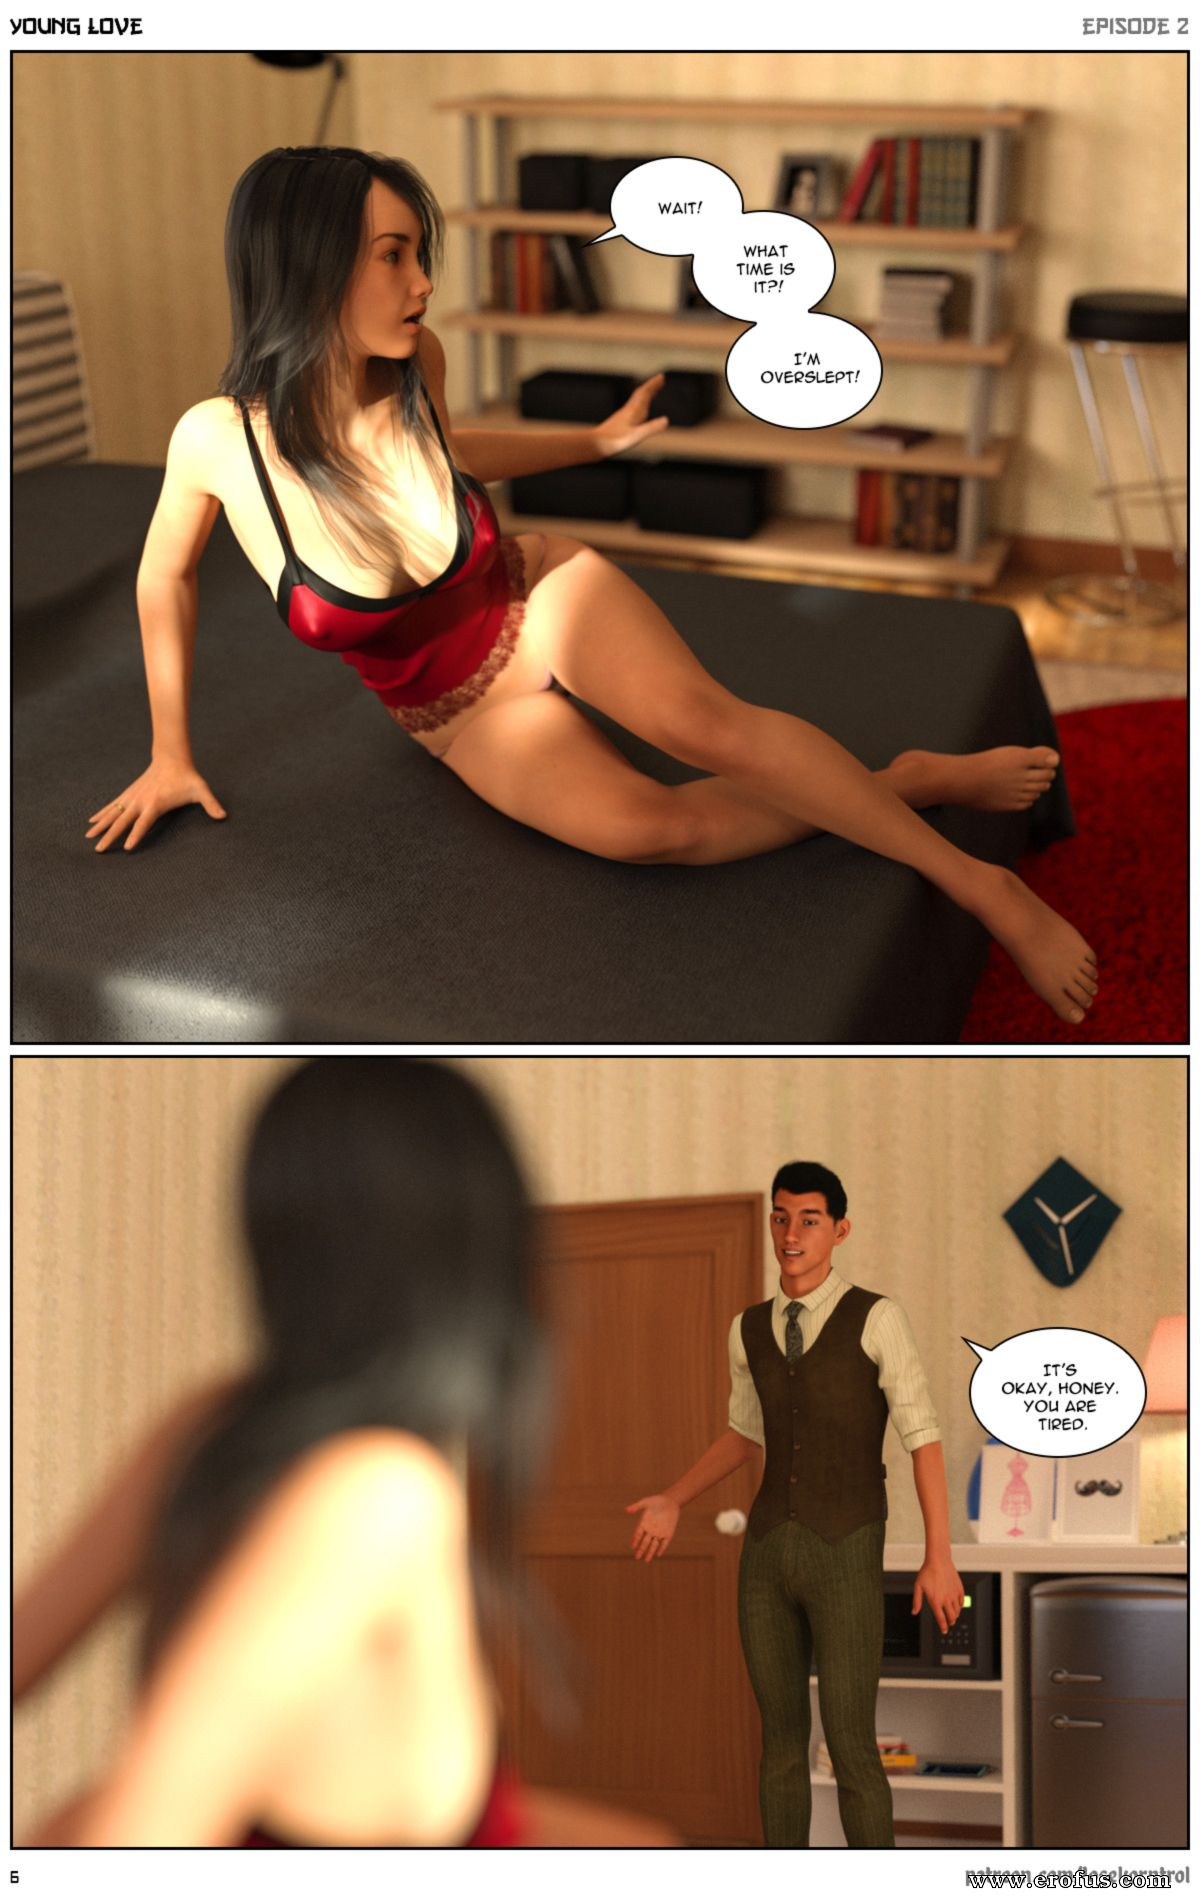 3Dx Porn Game page 6 | various-authors/hijab-3dx-losekorntrol/young-love